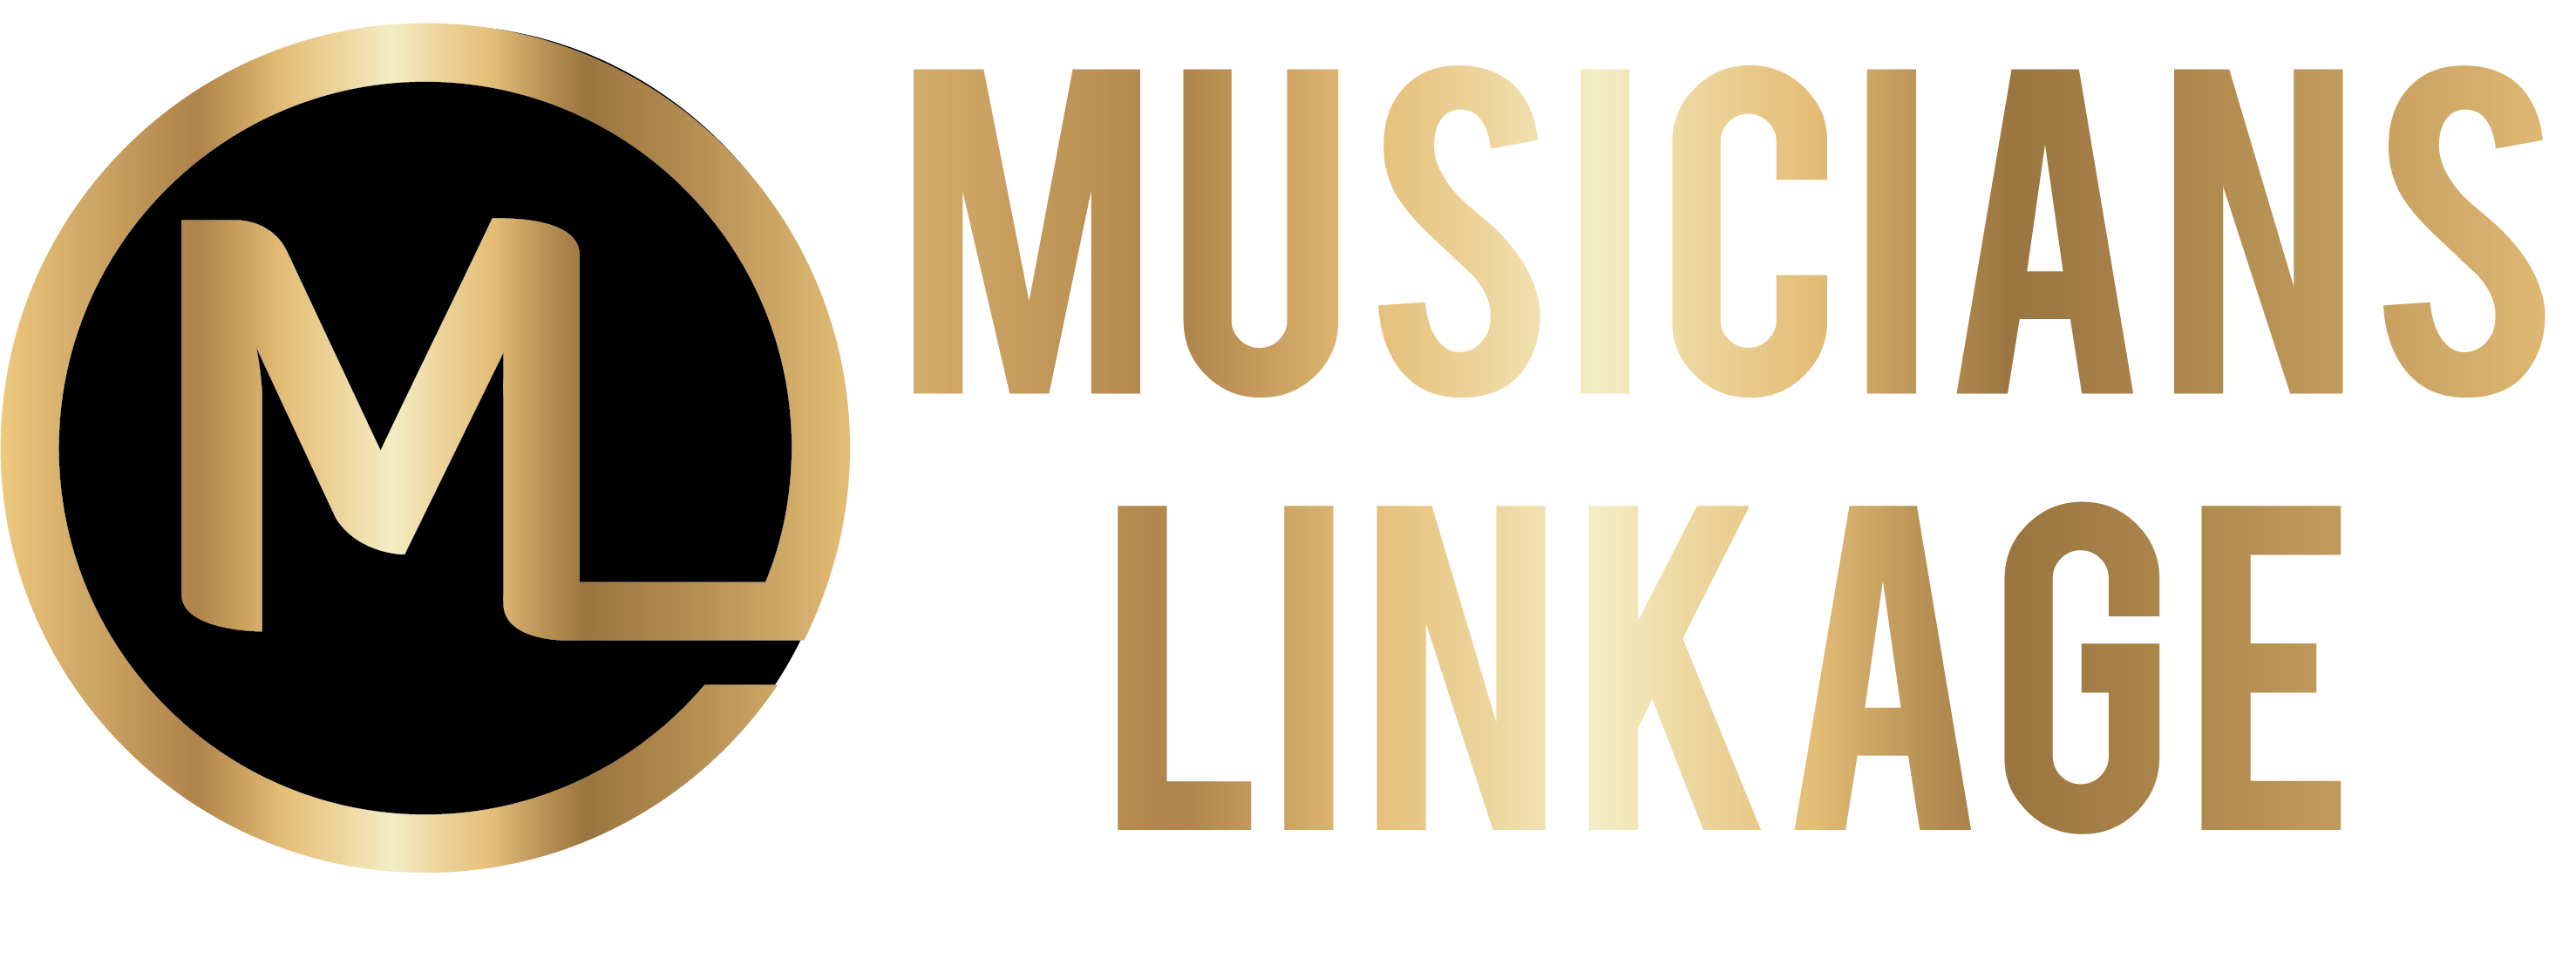 MUSICIANS LINKAGE